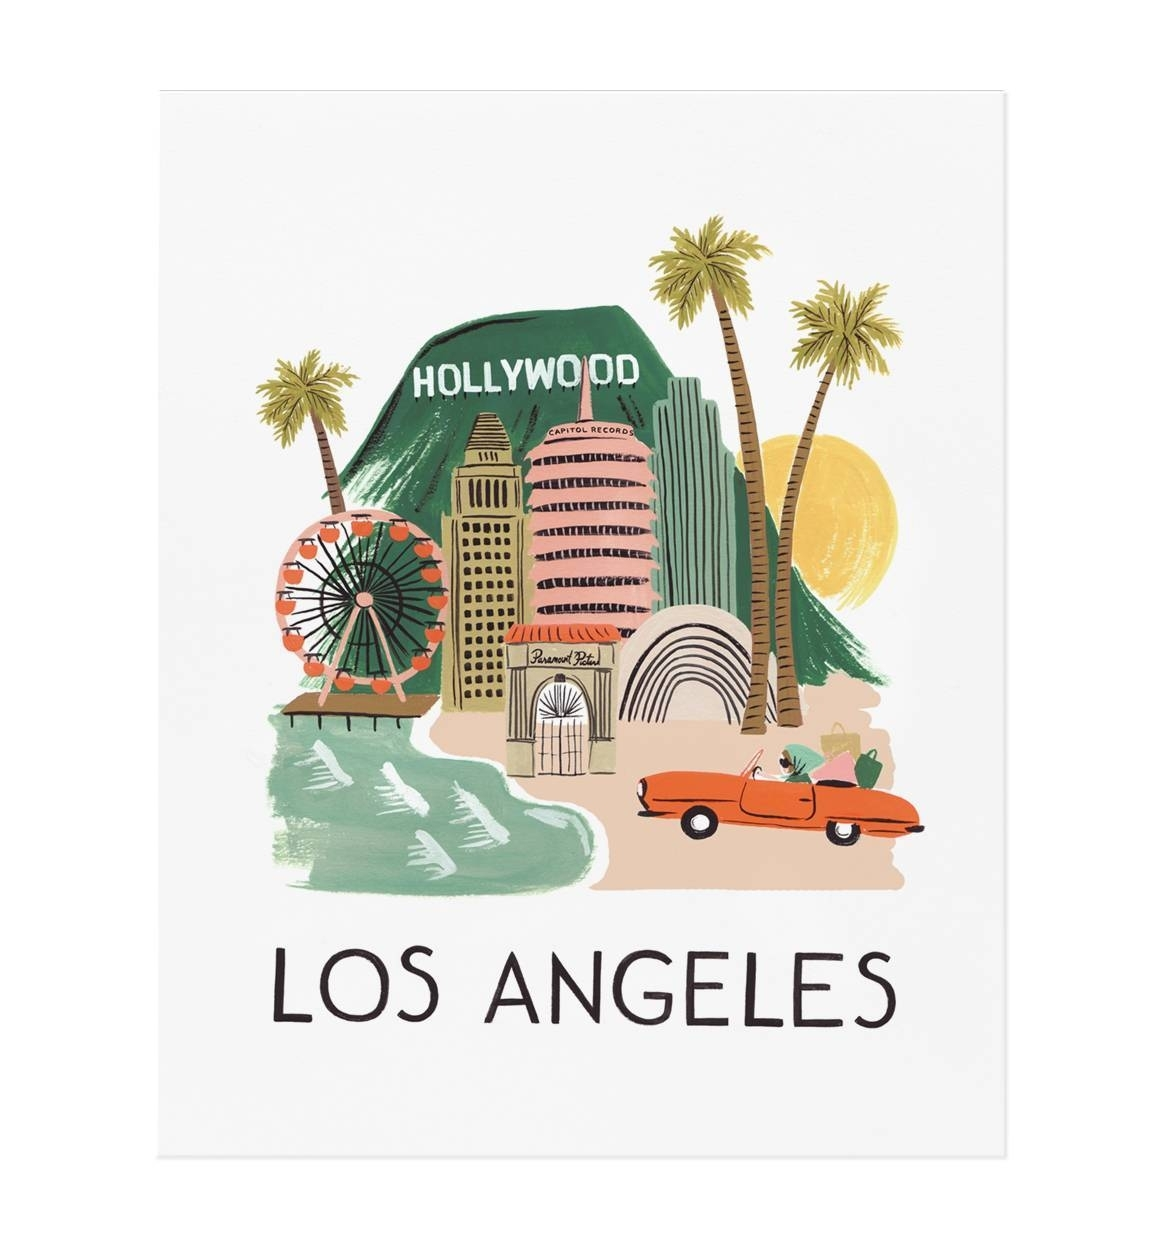 Los Angeles Art Printrifle Paper Co. | Made In Usa Intended For Most Popular Los Angeles Framed Art Prints (Gallery 6 of 15)